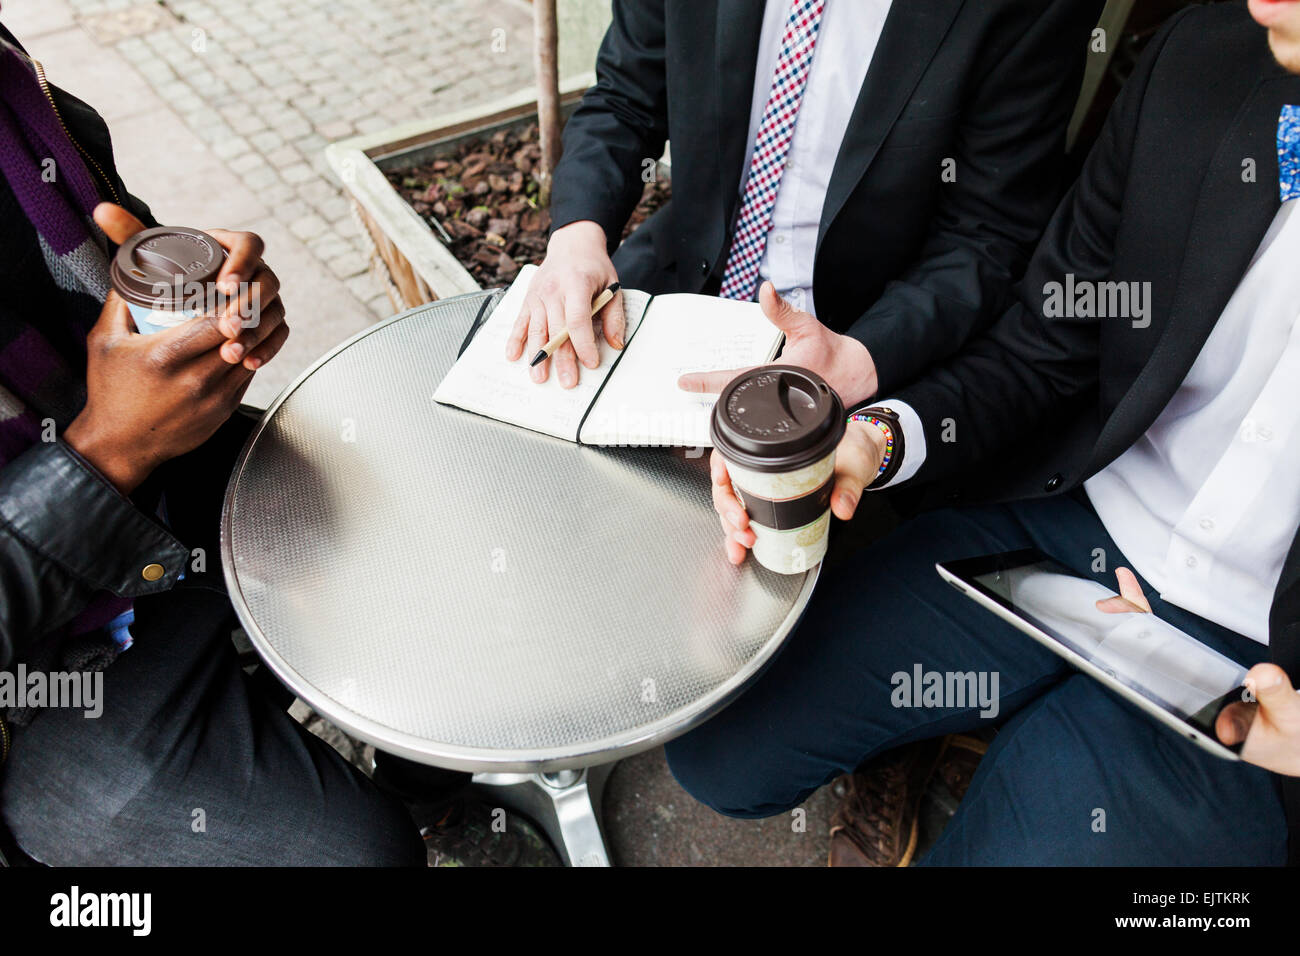 Business people with diary and disposable cups at sidewalk cafe - Stock Image